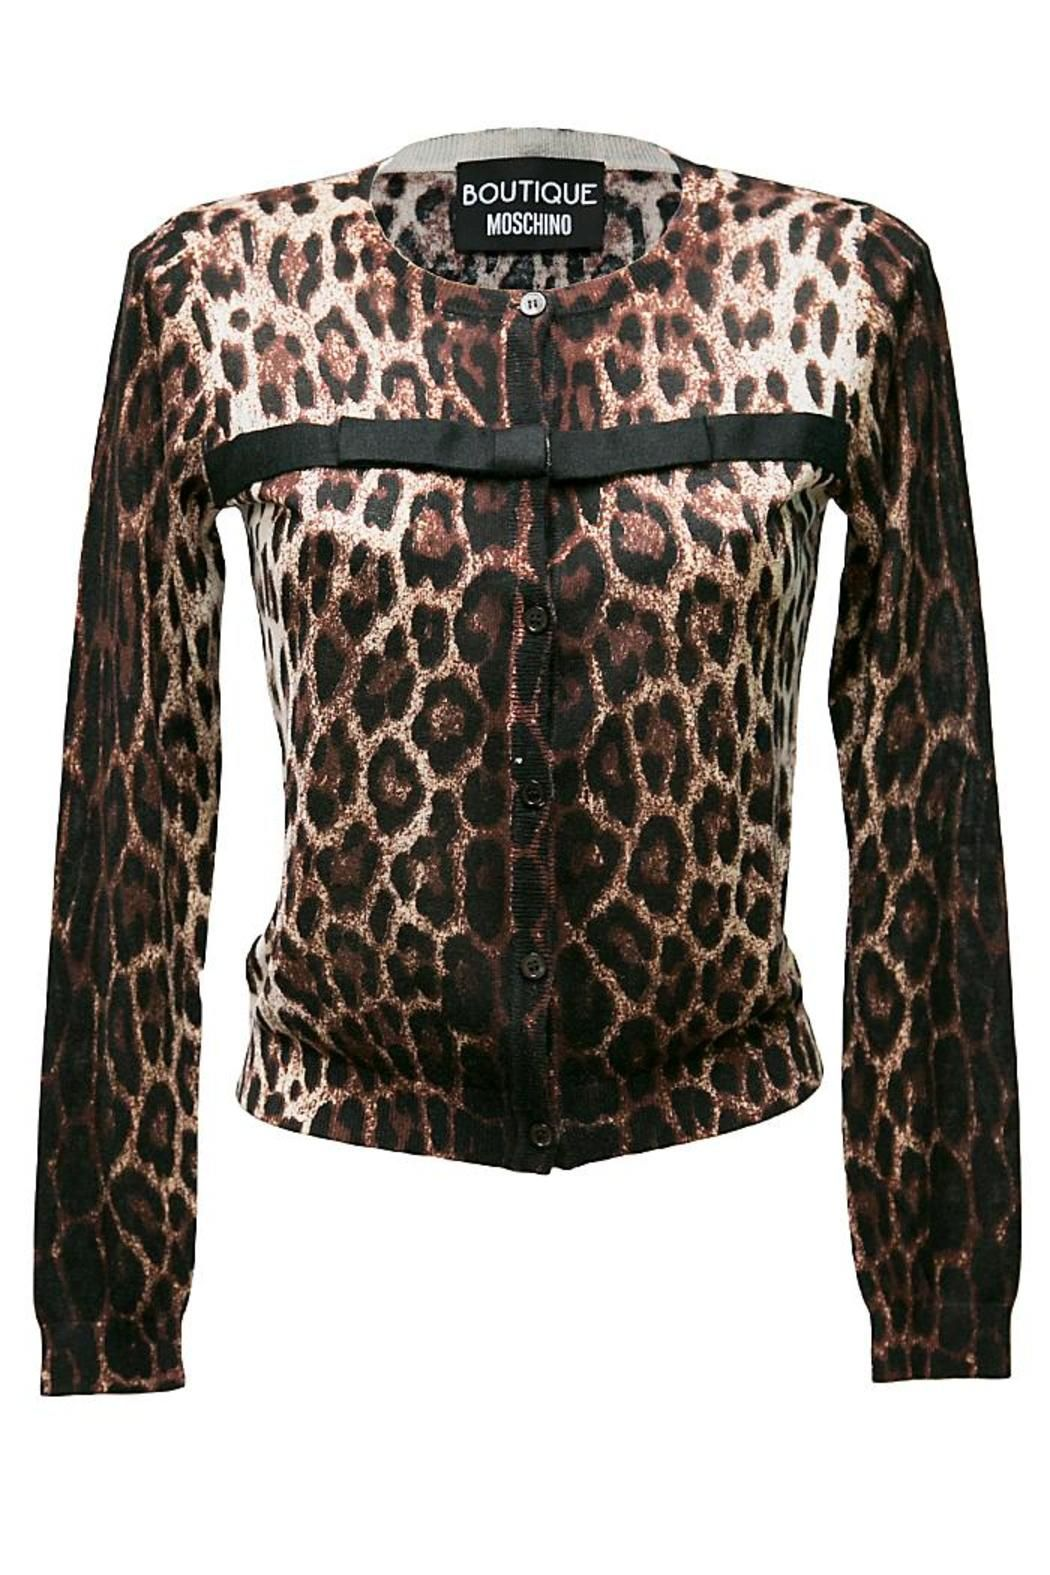 267d6c2039d4 Brown cream and black leopard print round neck cardigan with black bow  detail across the bust, in a super soft lightweight silk cashmere mix, the  cardigan ...